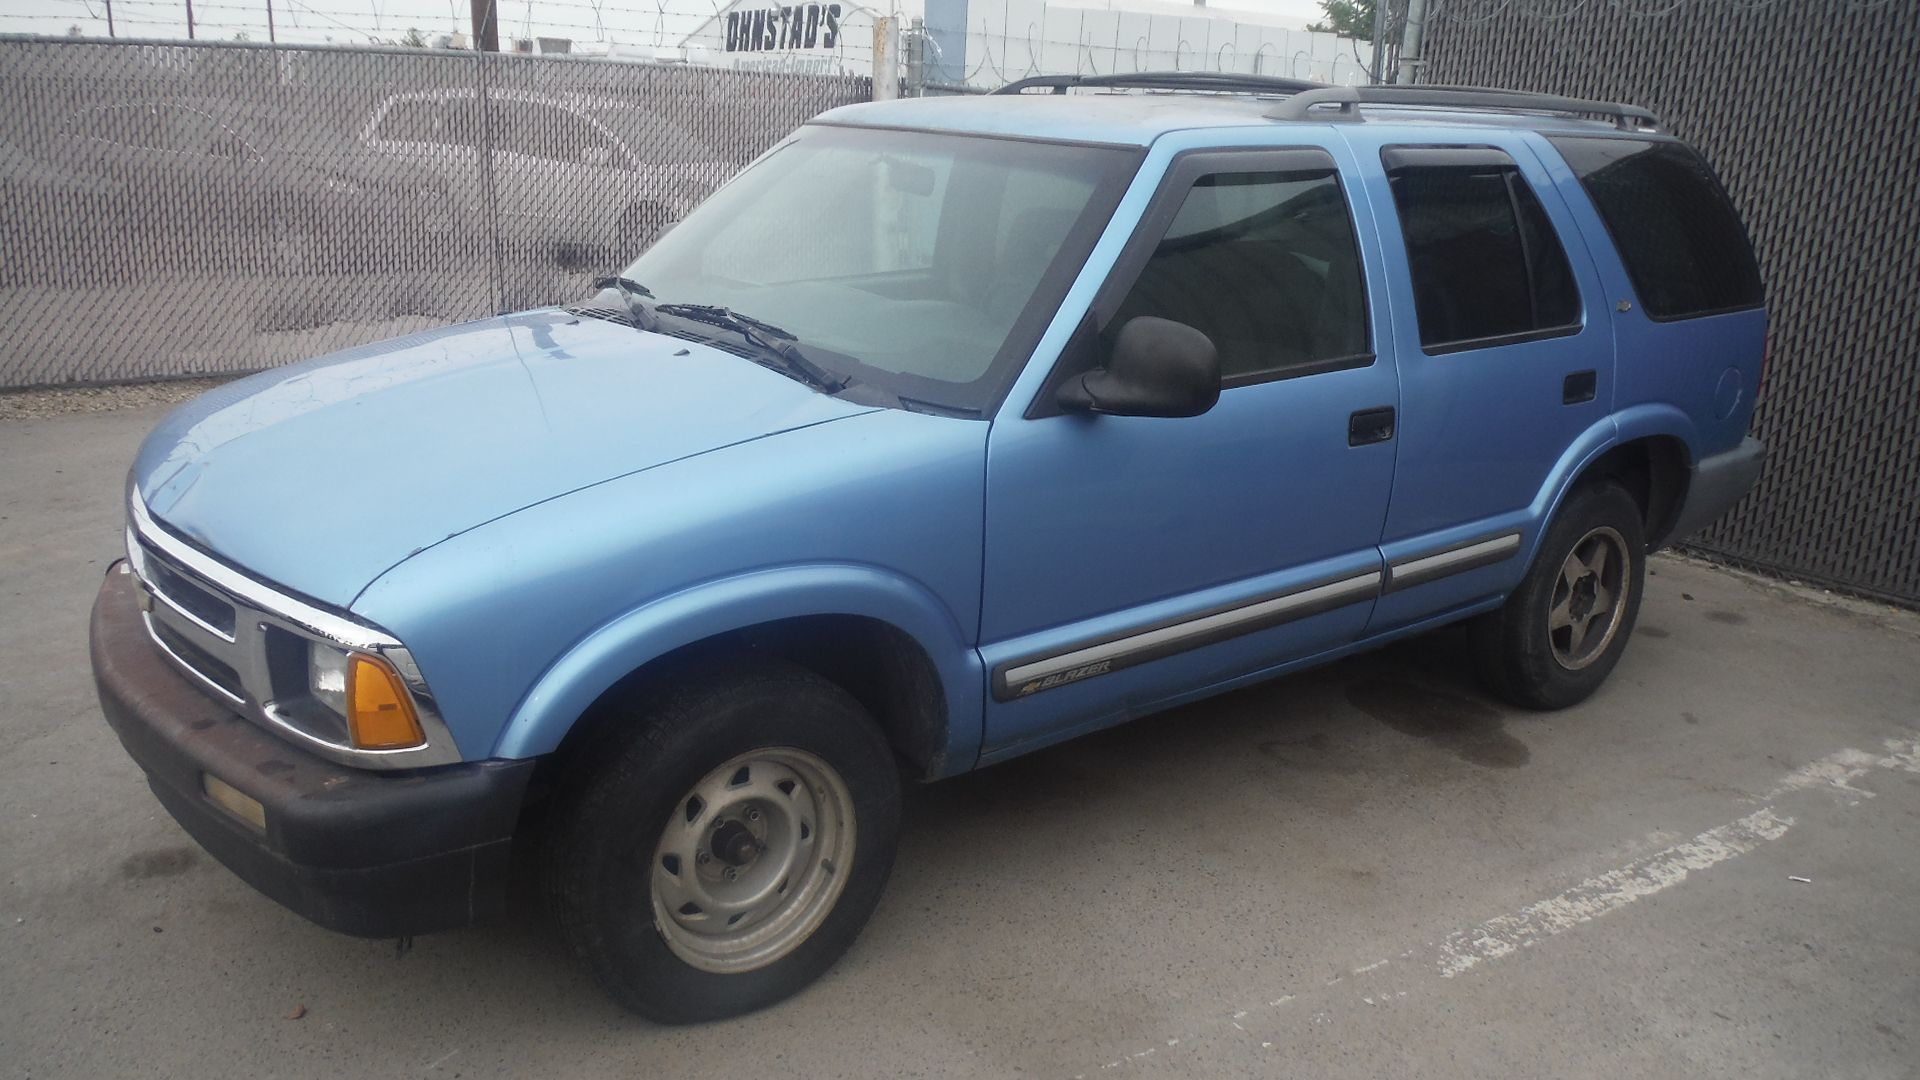 1996 Chevy Blazer 4 Door 2wd 4 3l With 137k Miles Chevy Brake Rotors Cold Air Intake